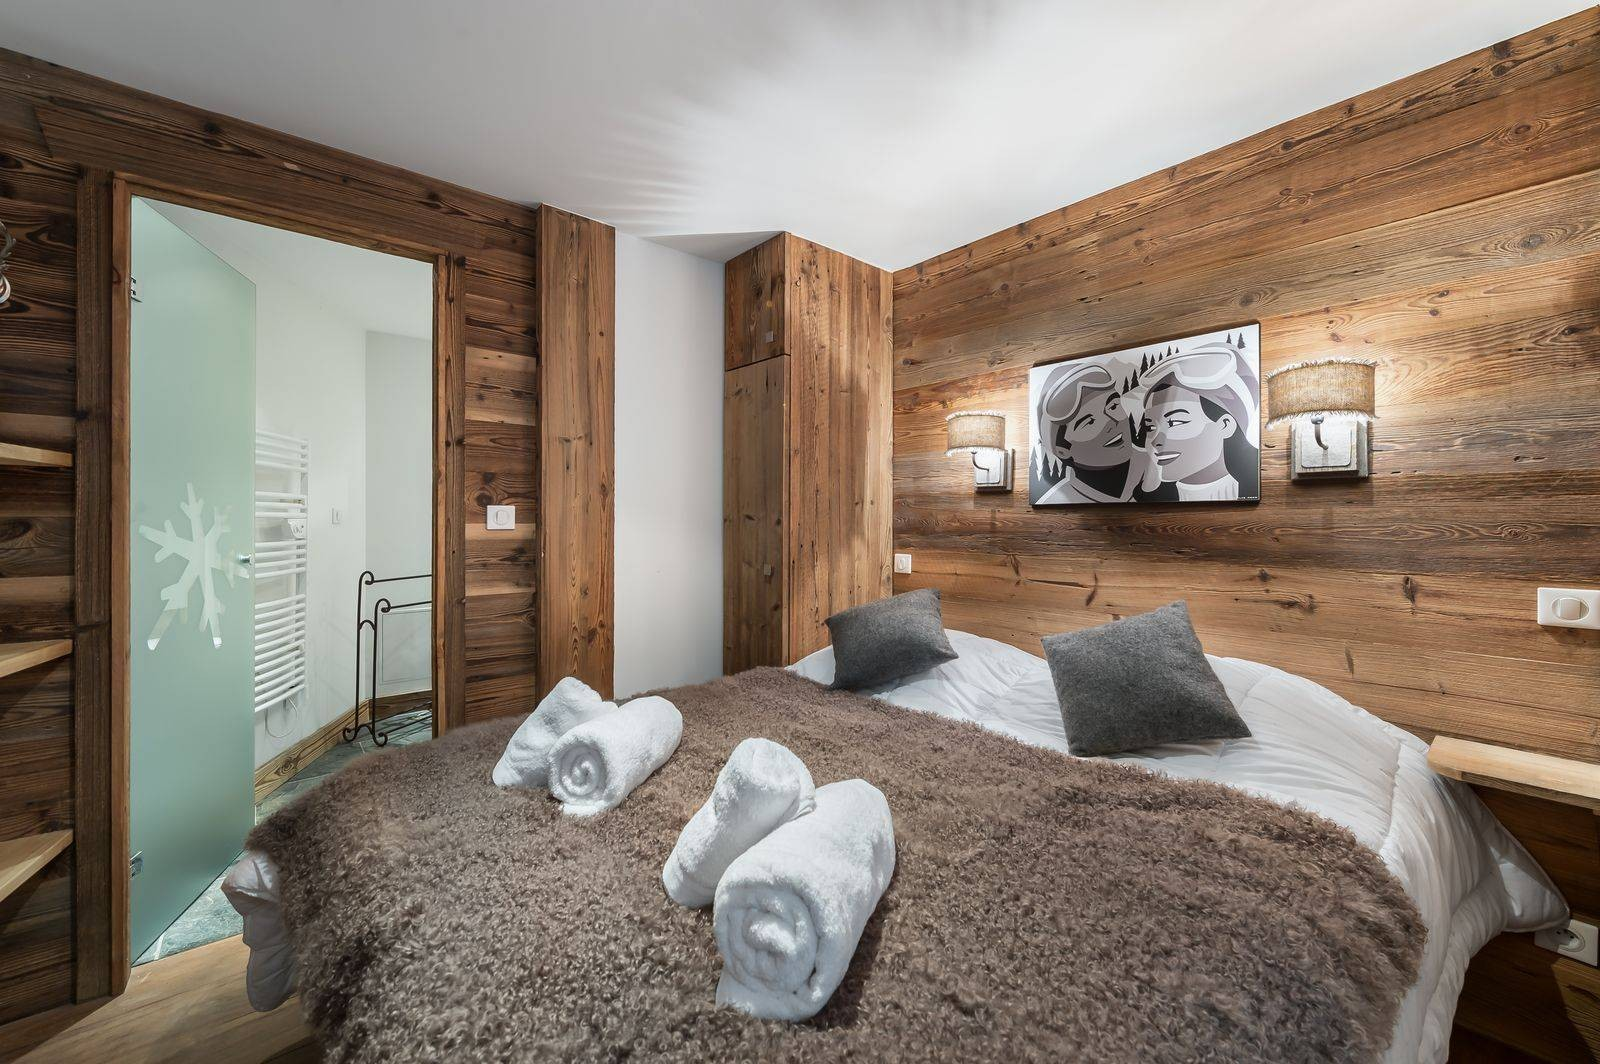 Courchevel 1300 Location Appartement Luxe Tilure Chambre 5